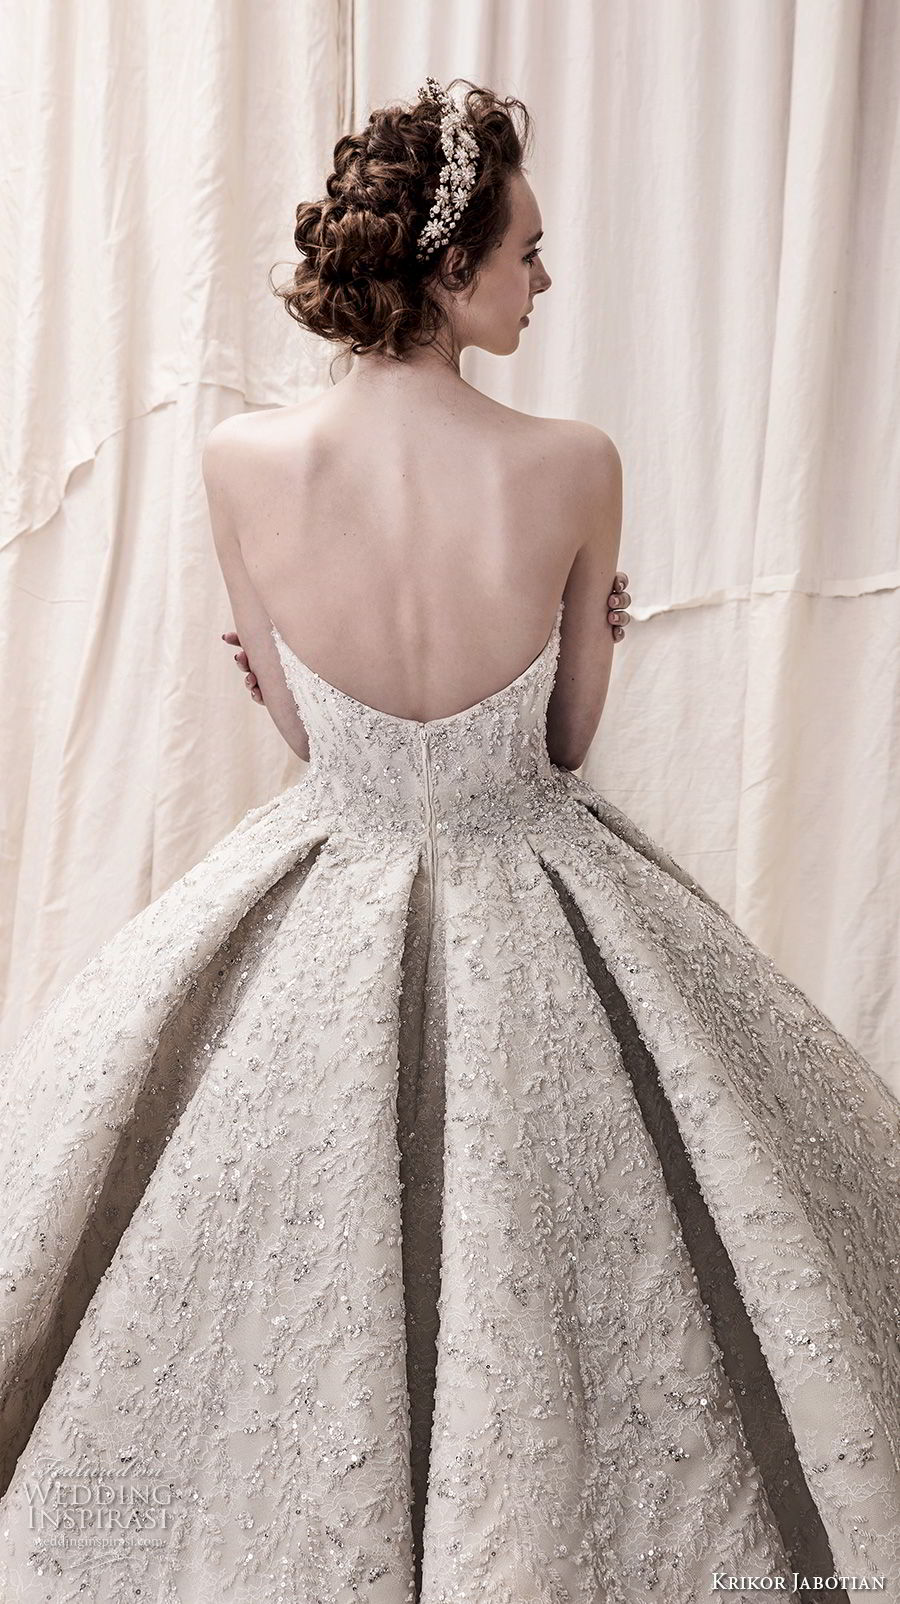 krikor jabotian spring 2018 bridal straplss semi sweetheart neckline full embellishment glamorous princess ball gown a line wedding dress open back royal train (05) zbv